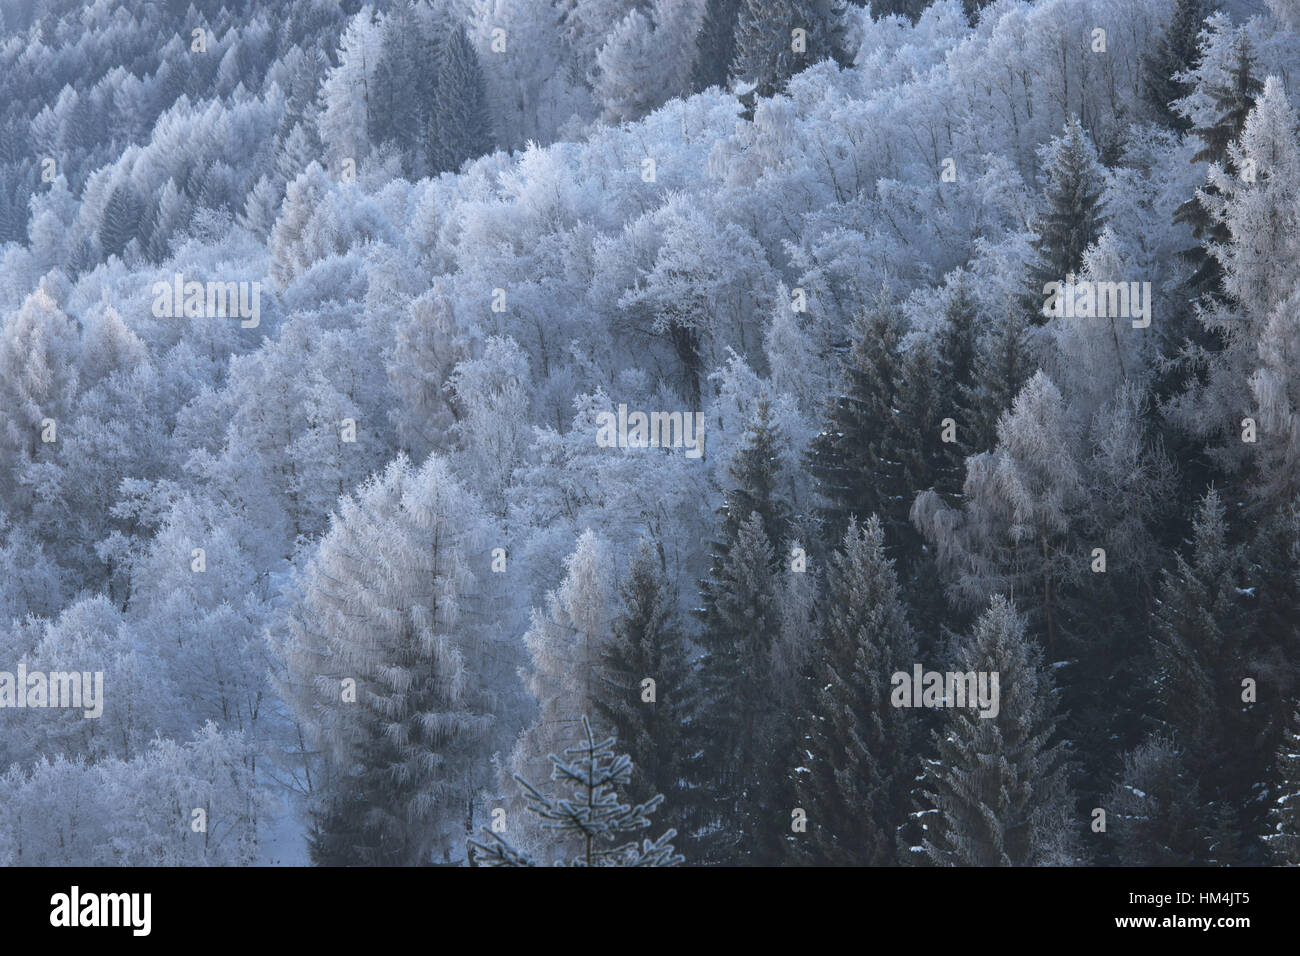 Morning hoar frost in the forest near Axams, Tirol, Austria - Stock Image